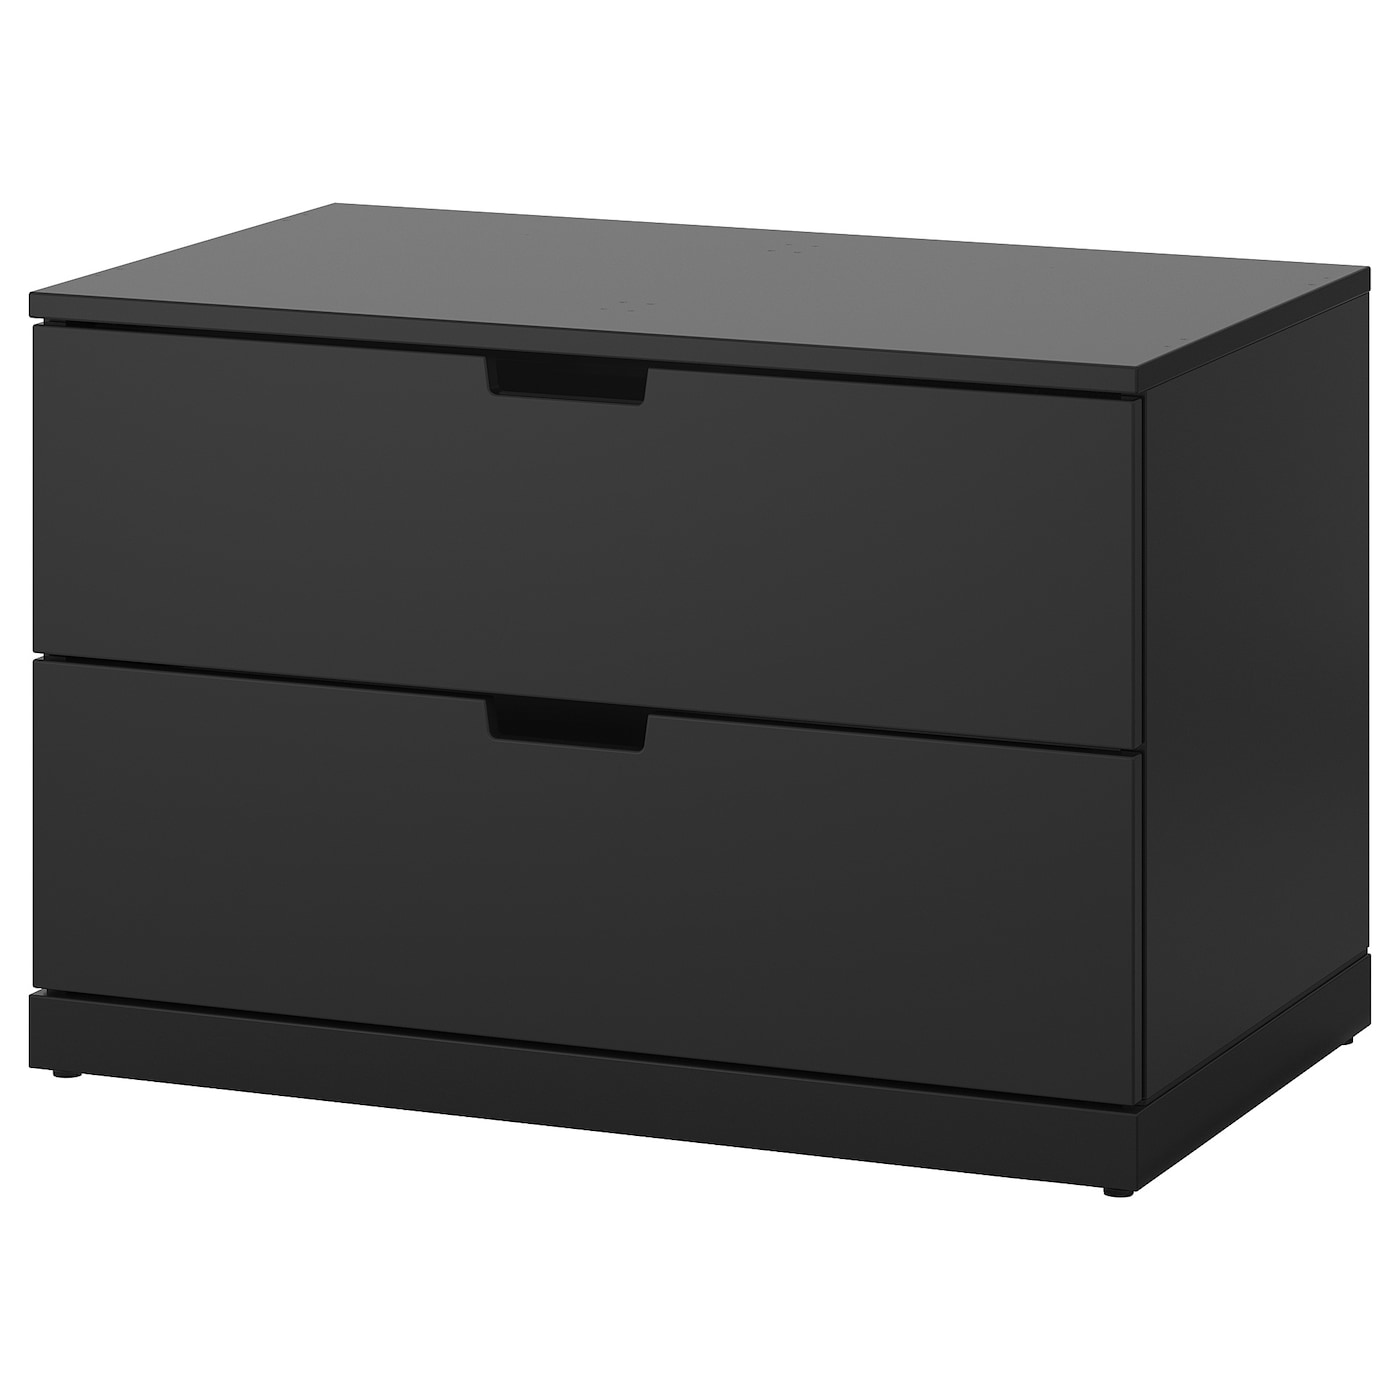 nordli commode 2 tiroirs anthracite 80 x 54 cm ikea. Black Bedroom Furniture Sets. Home Design Ideas